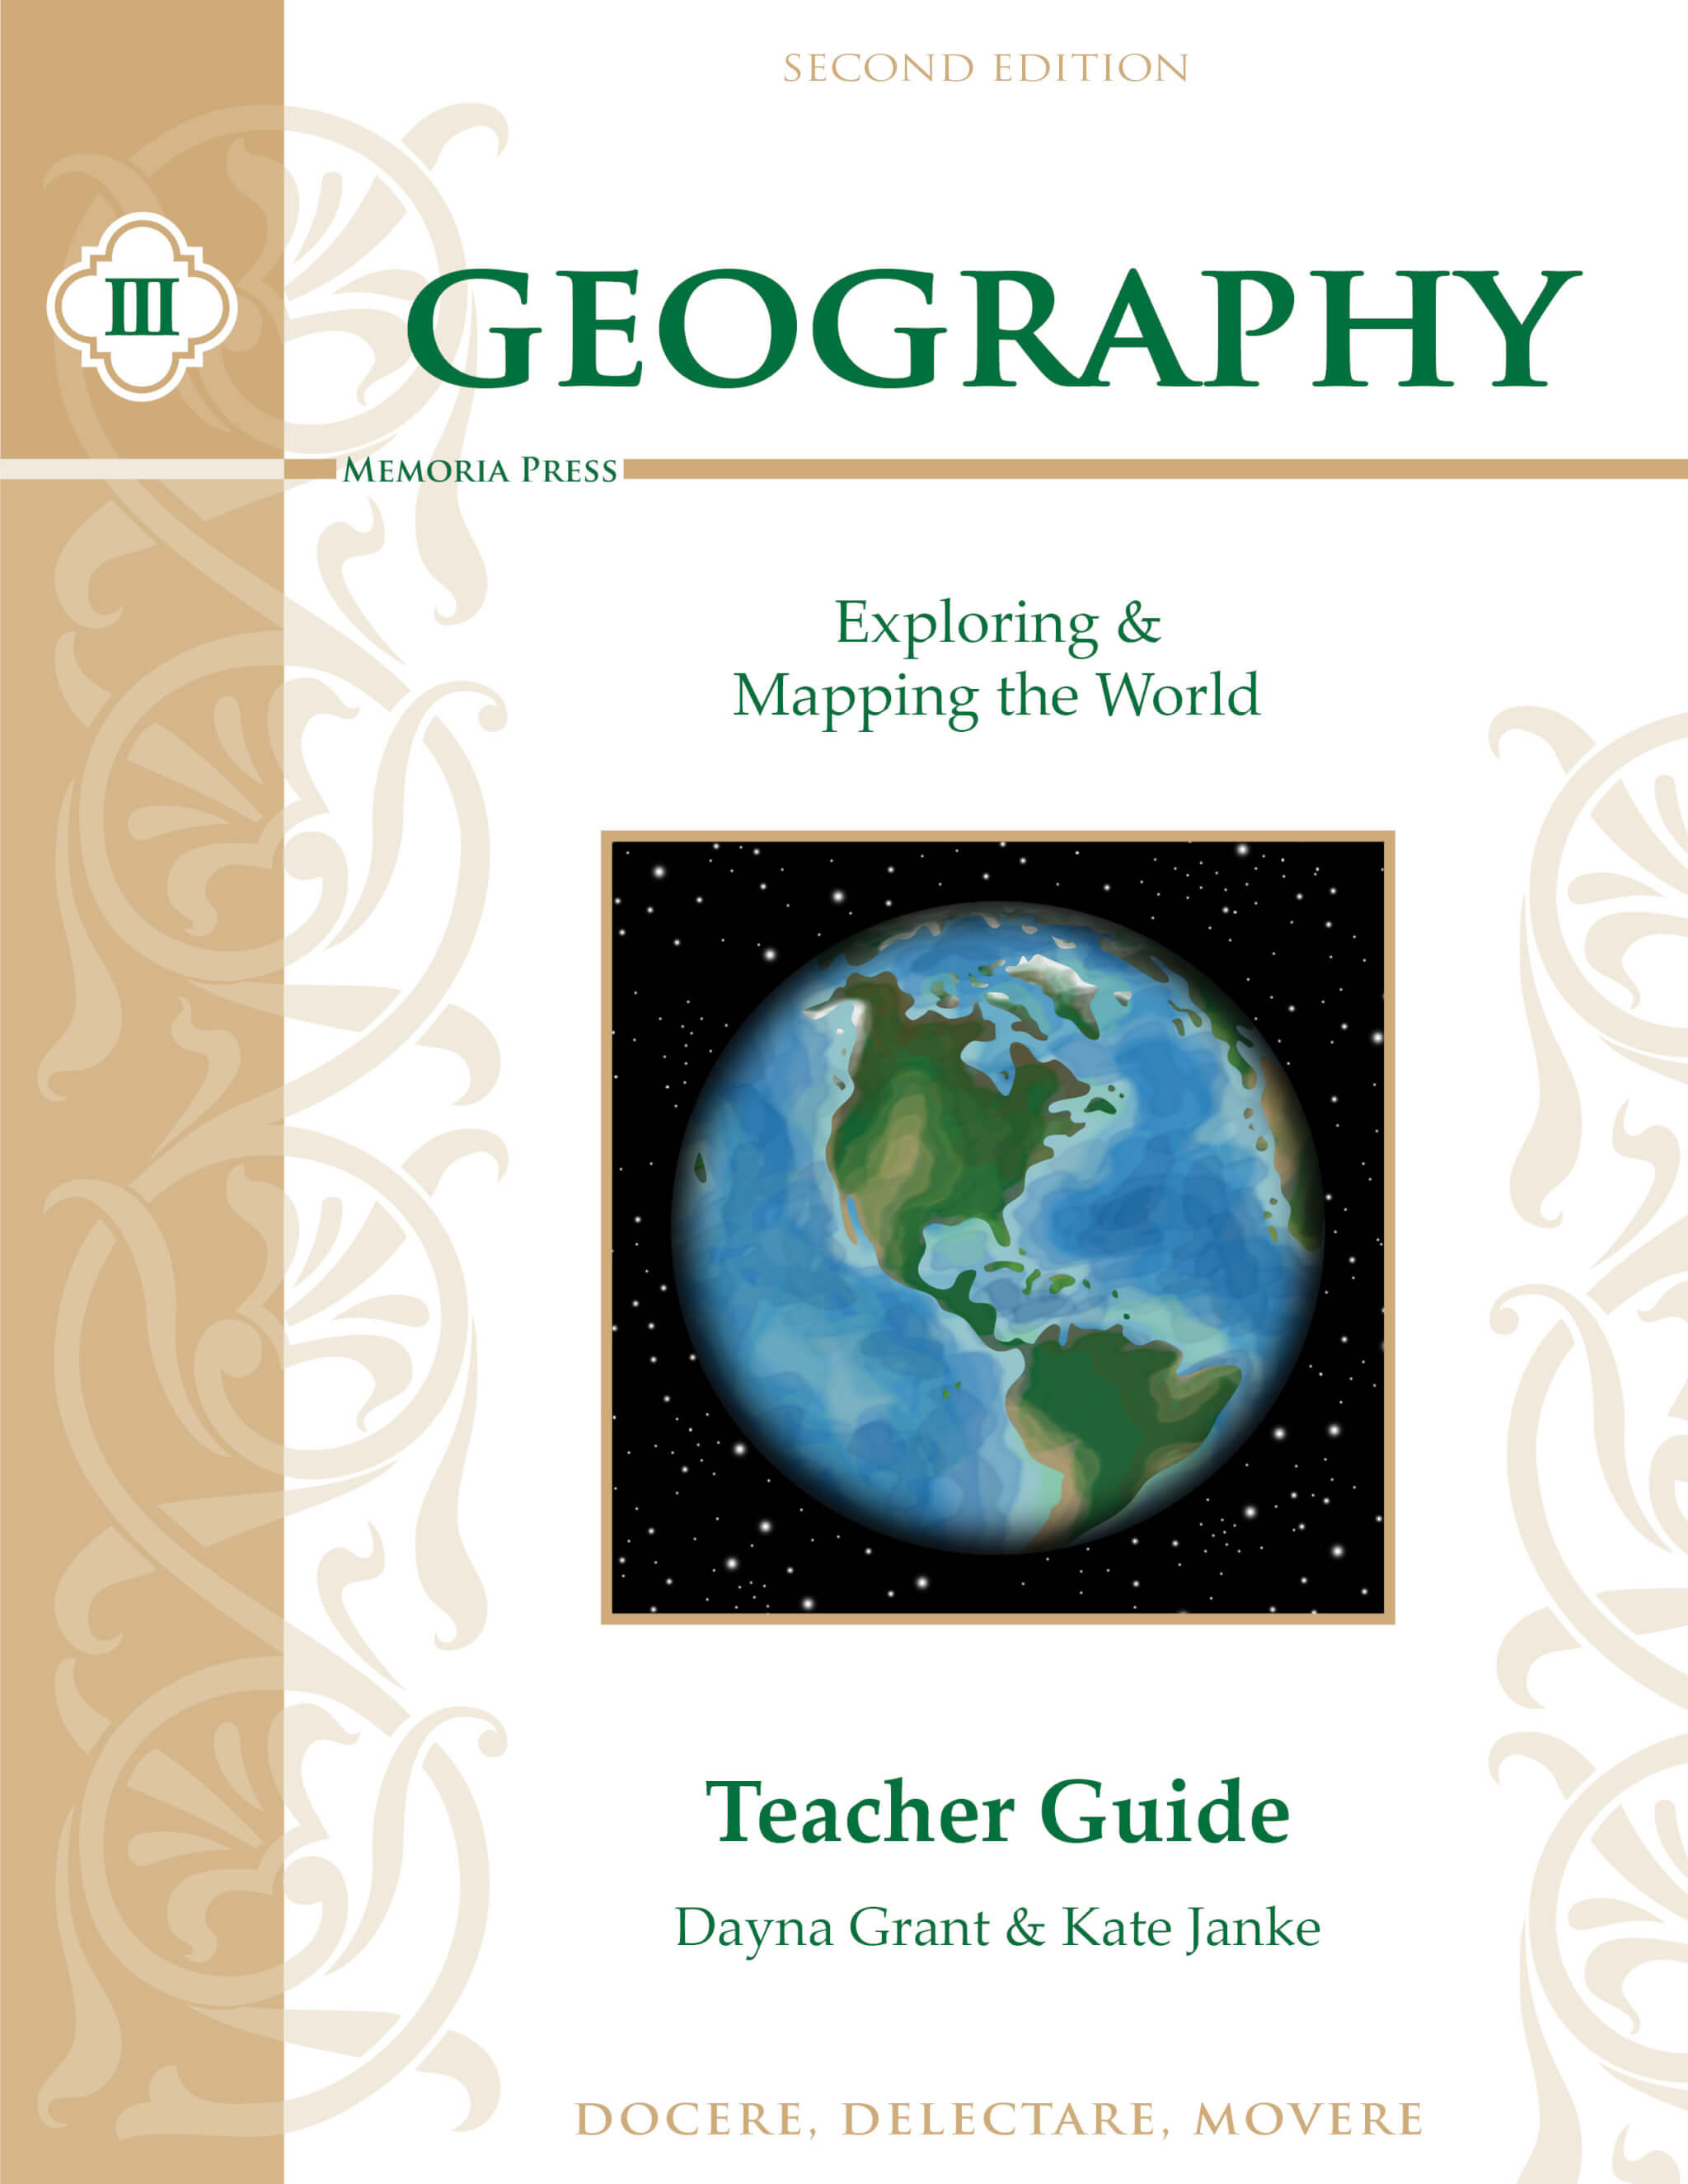 Exploring the worlds religions a reading and writing workbook array geography iii teacher guide memoria press rh memoriapress com fandeluxe Choice Image